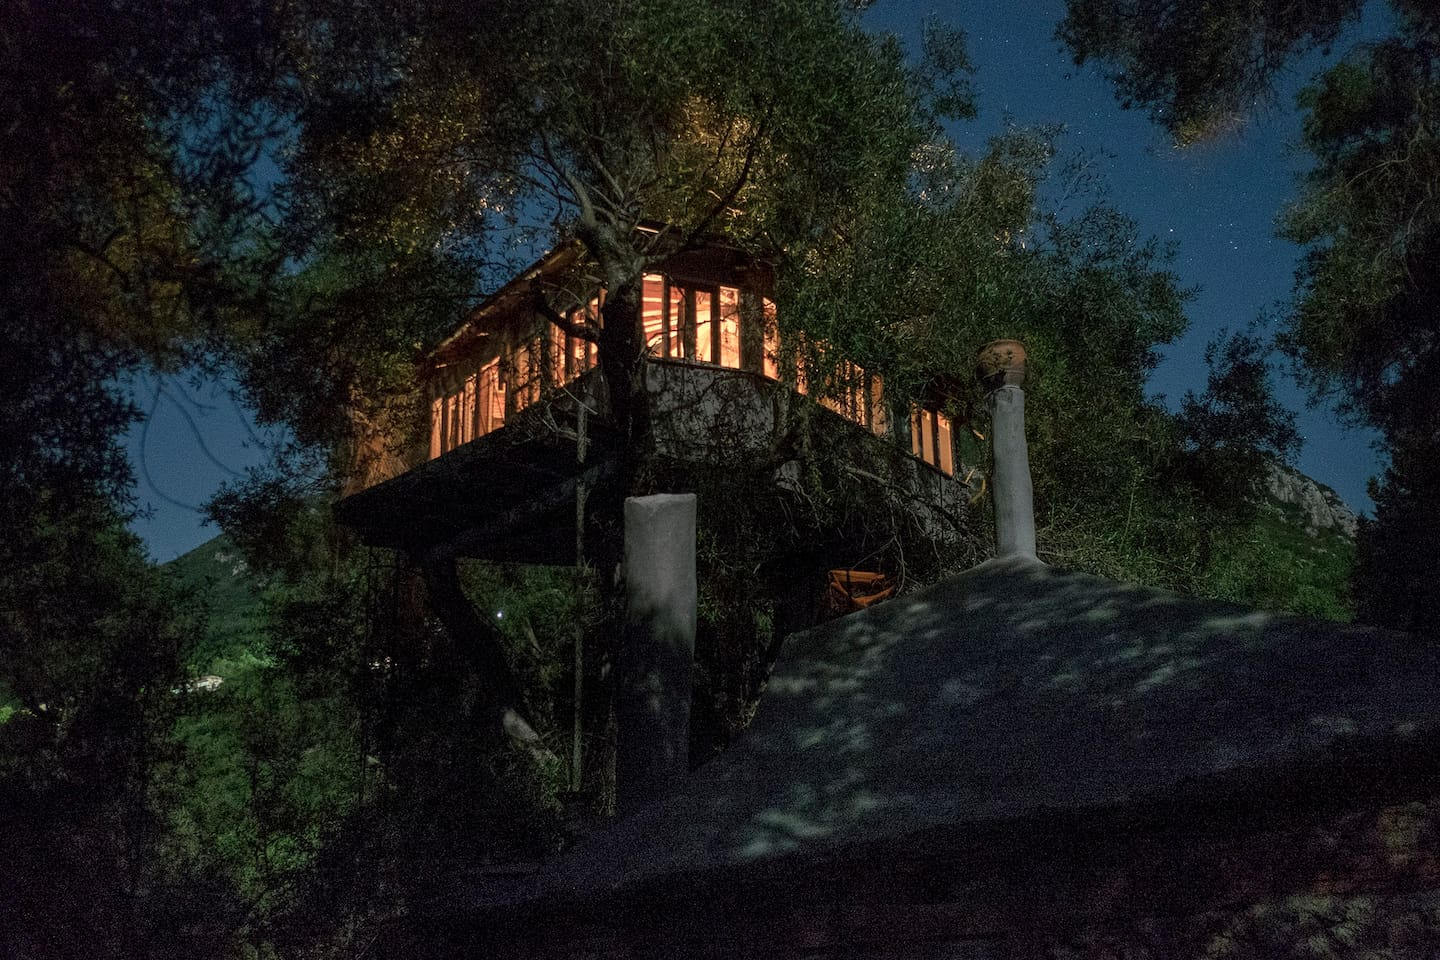 Treehouse by moonlight